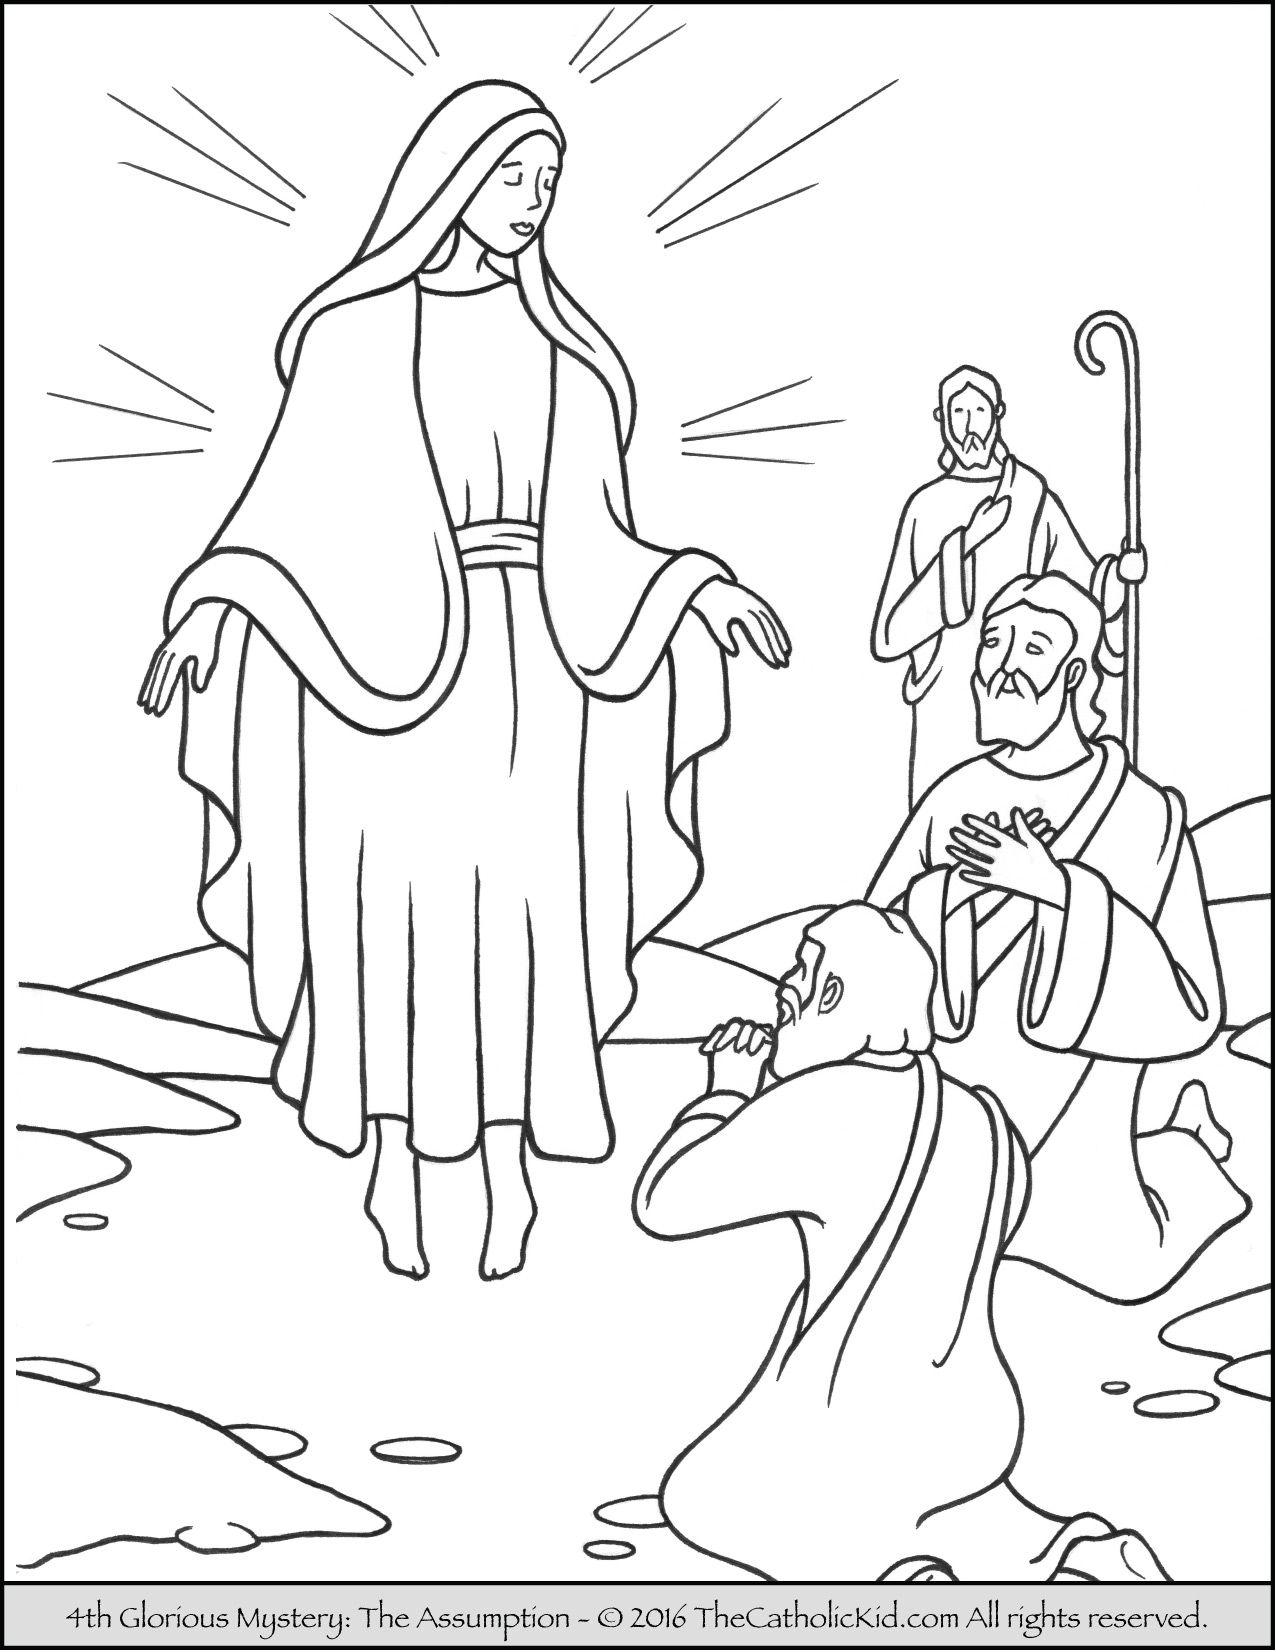 Glorious Mysteries Rosary Coloring Pages The Catholic Kid Sunday School Coloring Pages Coloring Pages Coloring Pages Inspirational